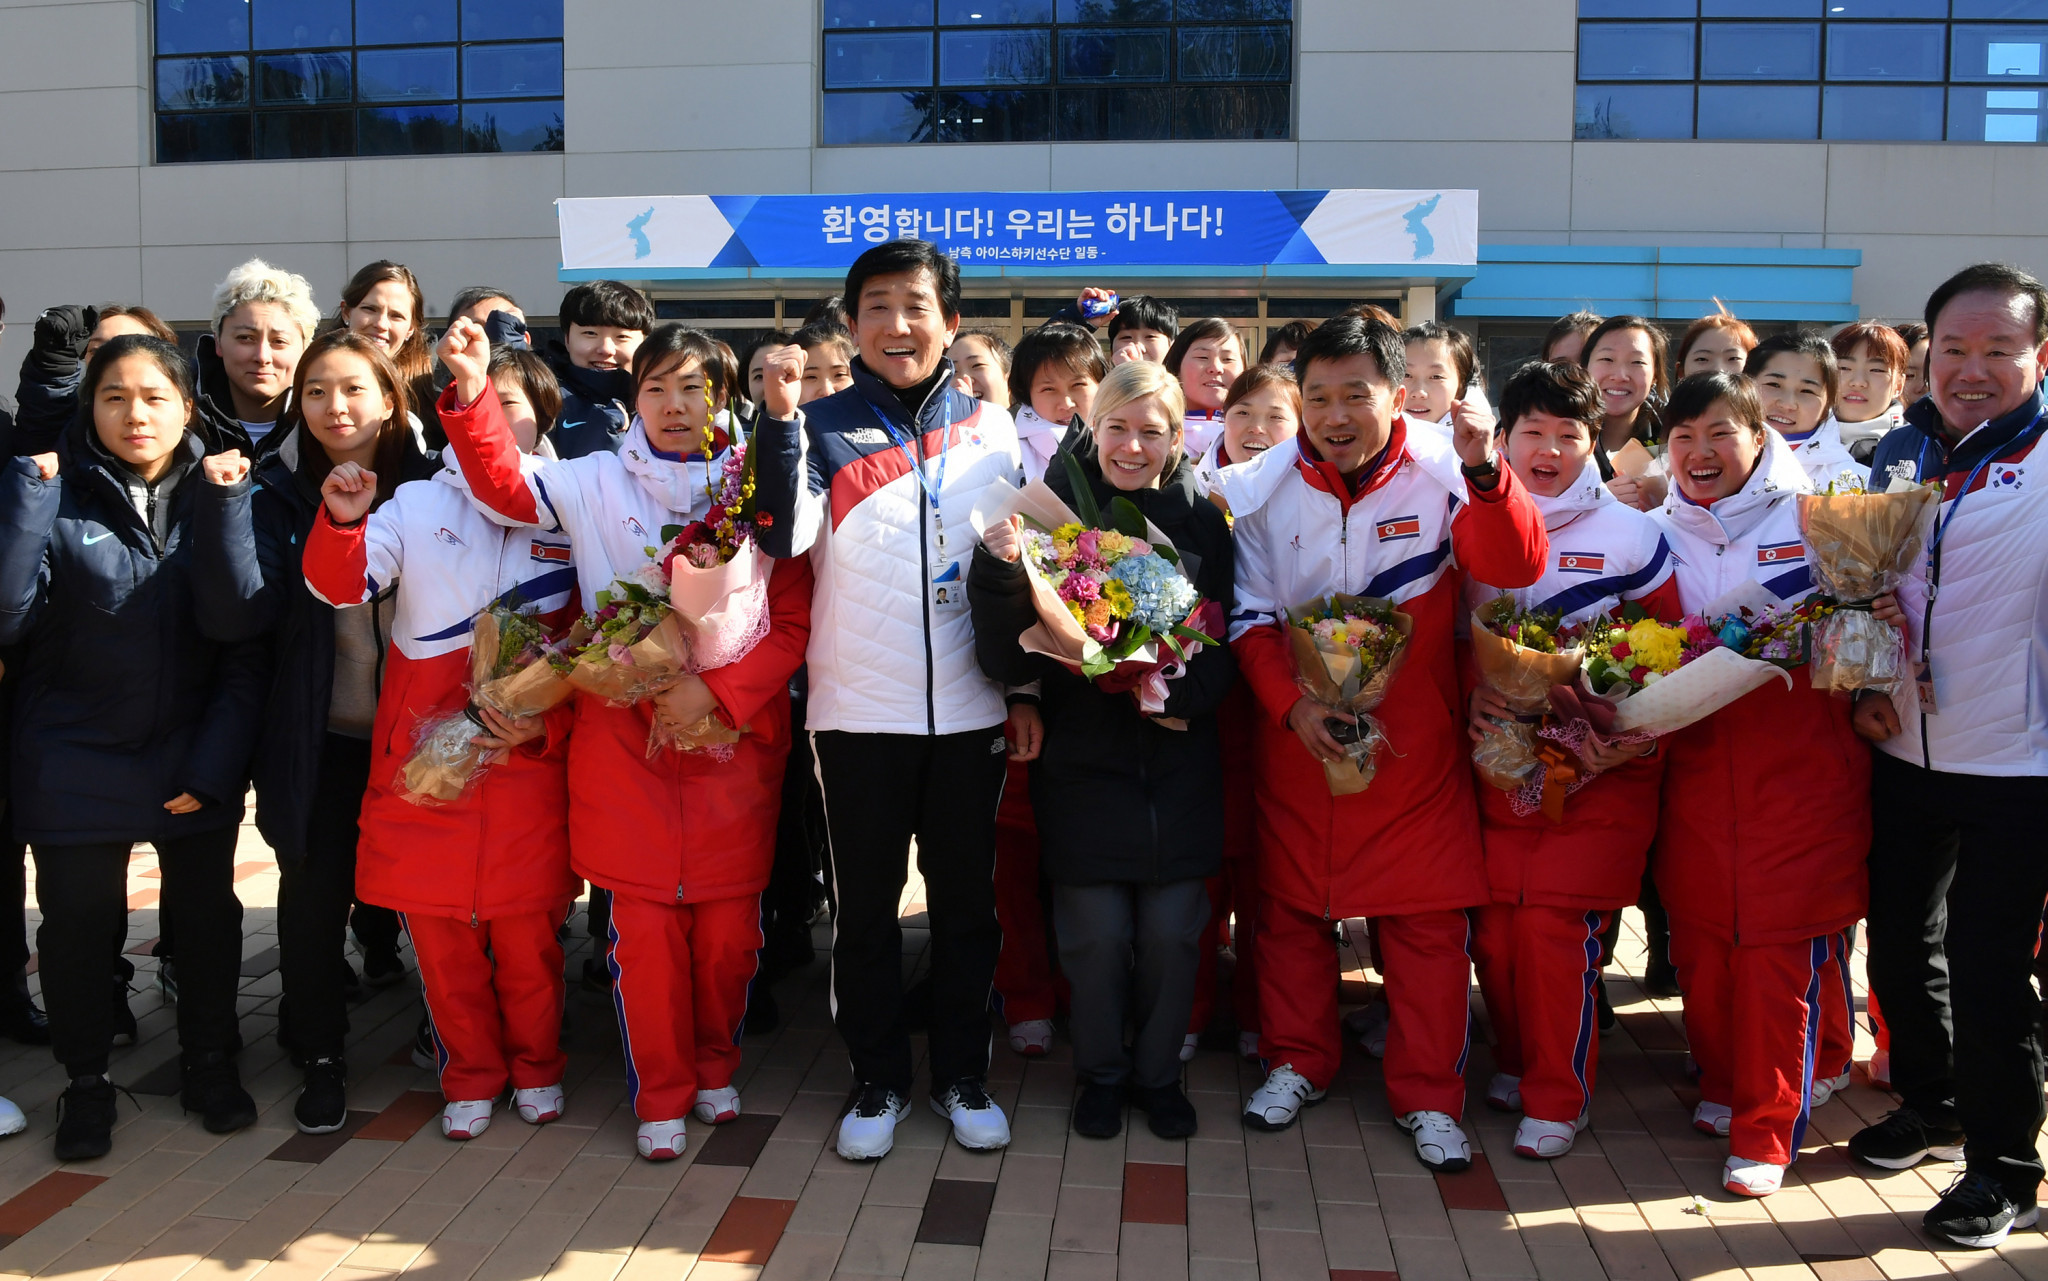 North Korea's Olympic athletes likely to use South Korean chartered flight to reach Pyeongchang 2018